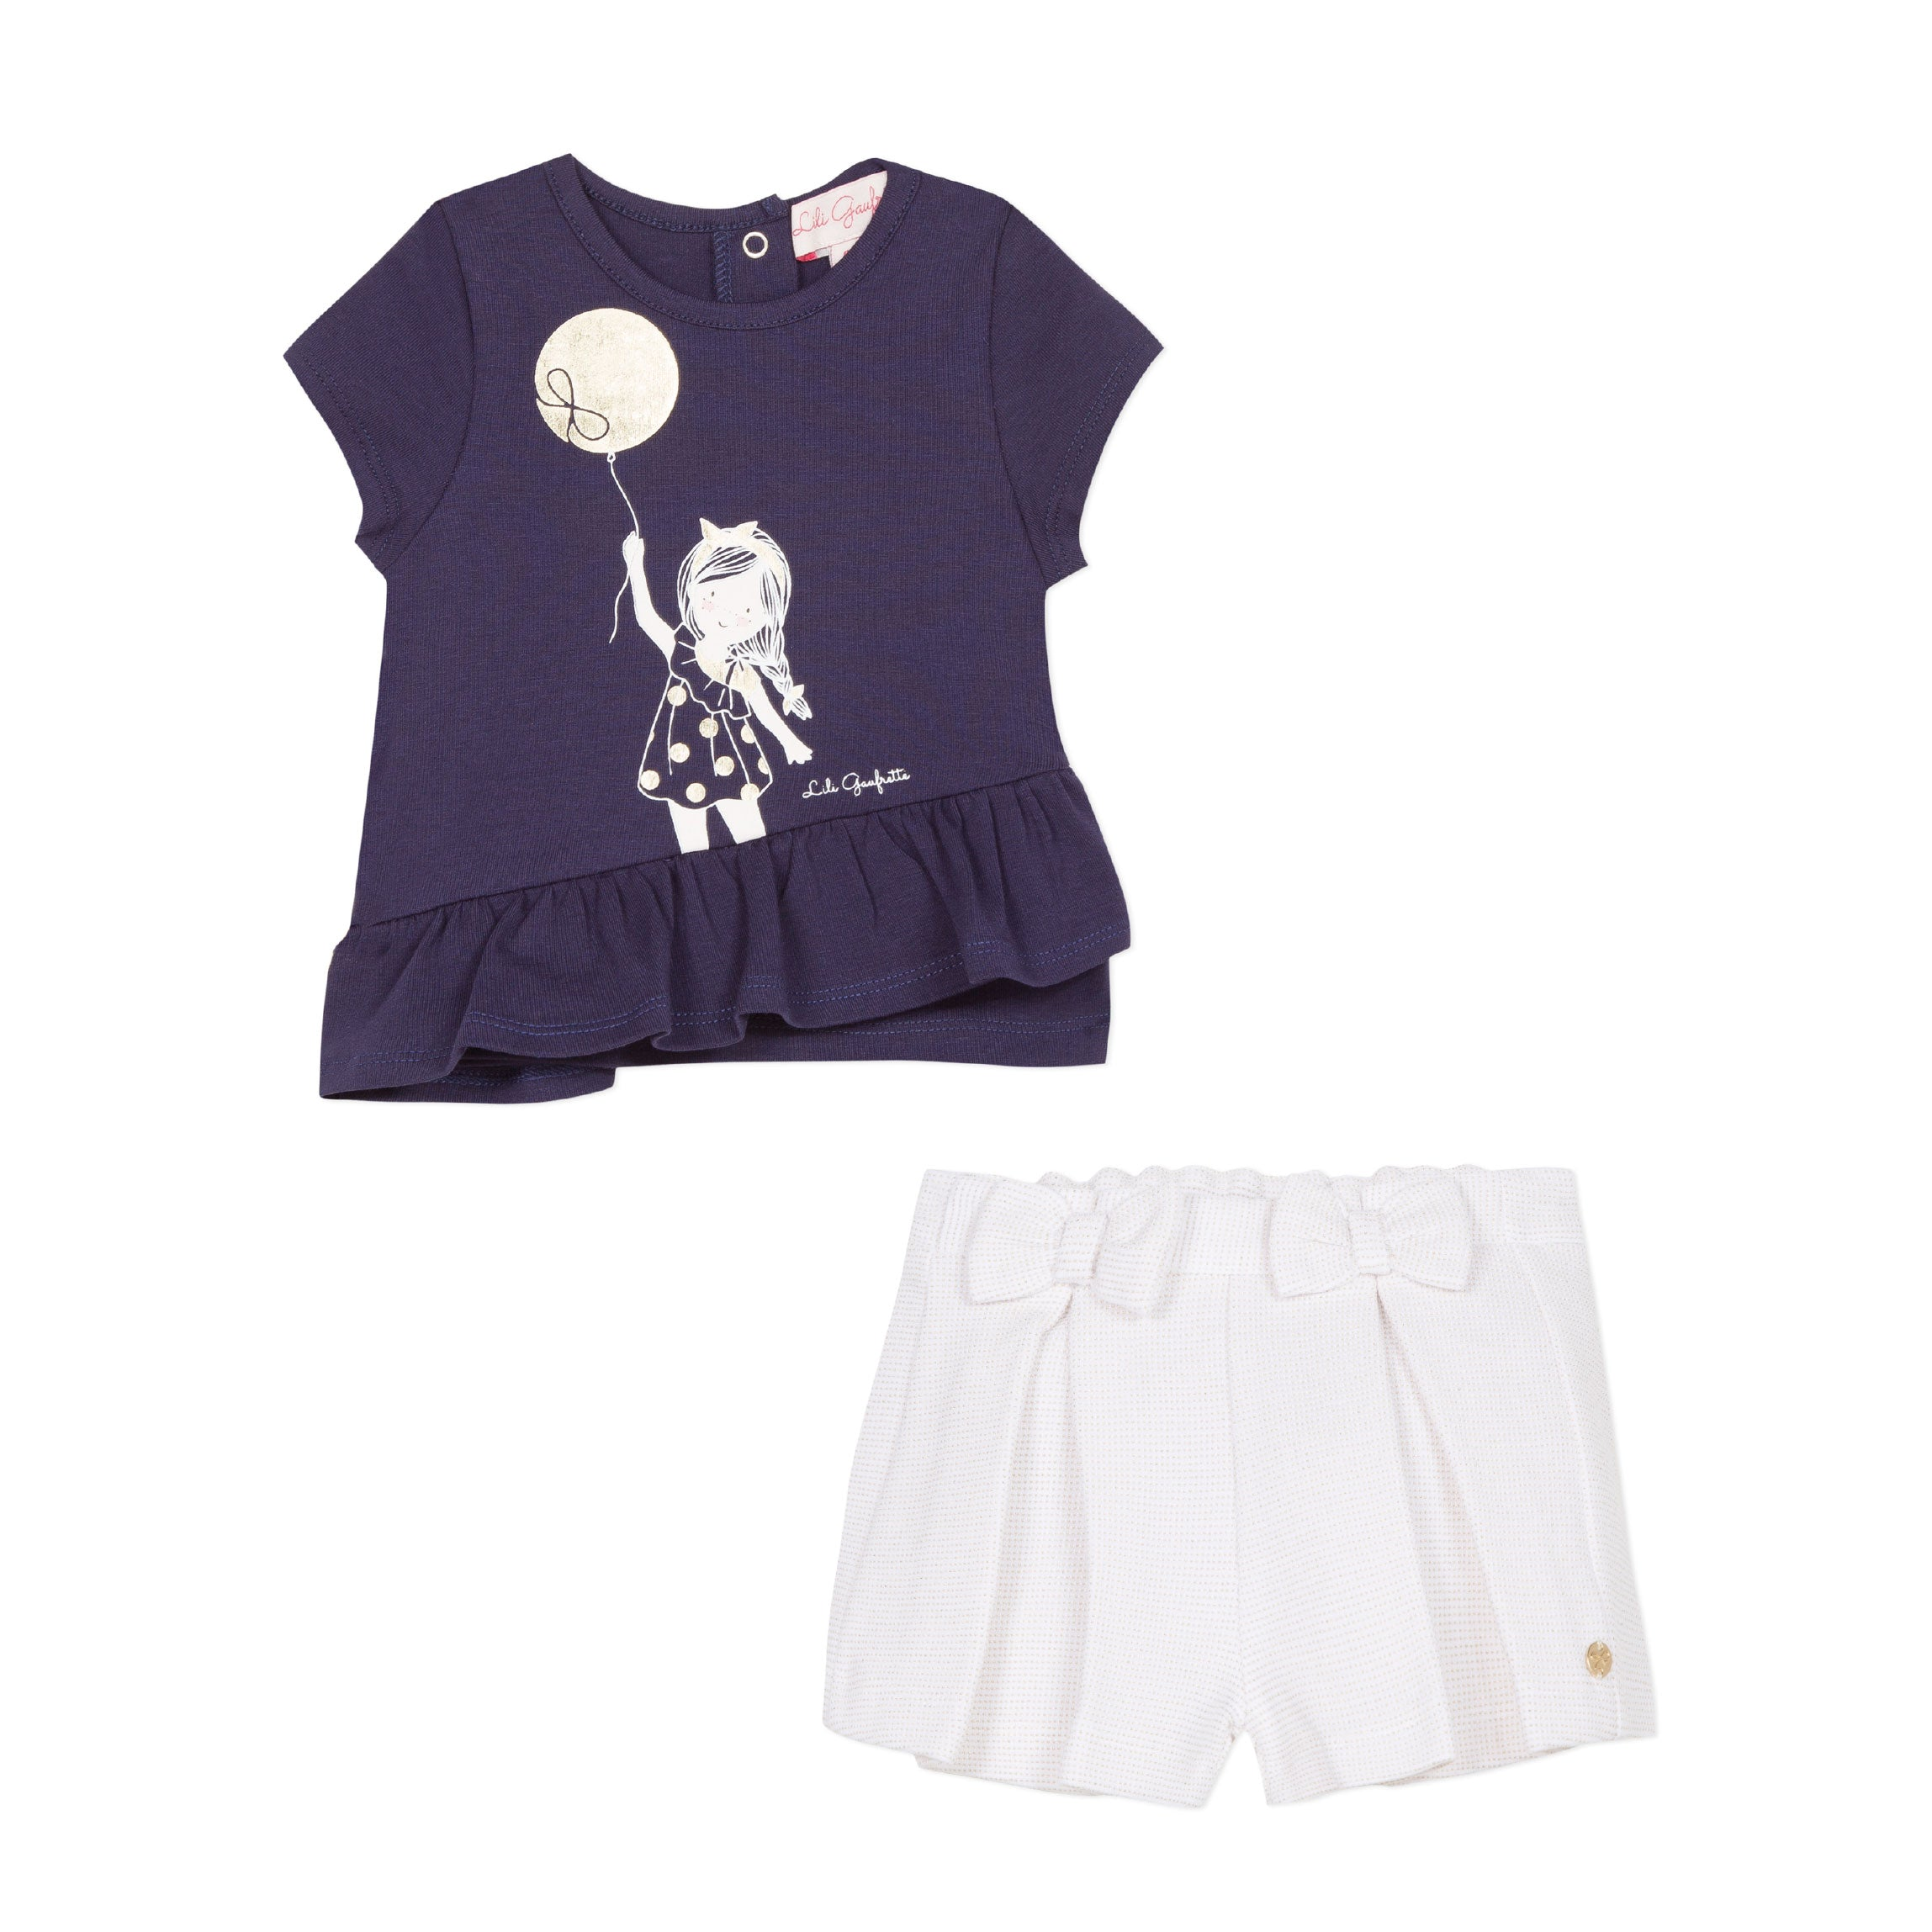 Luxury Baby Fashion by Lili Laufrette at Bonjour Baby Baskets - Best Baby Gifts